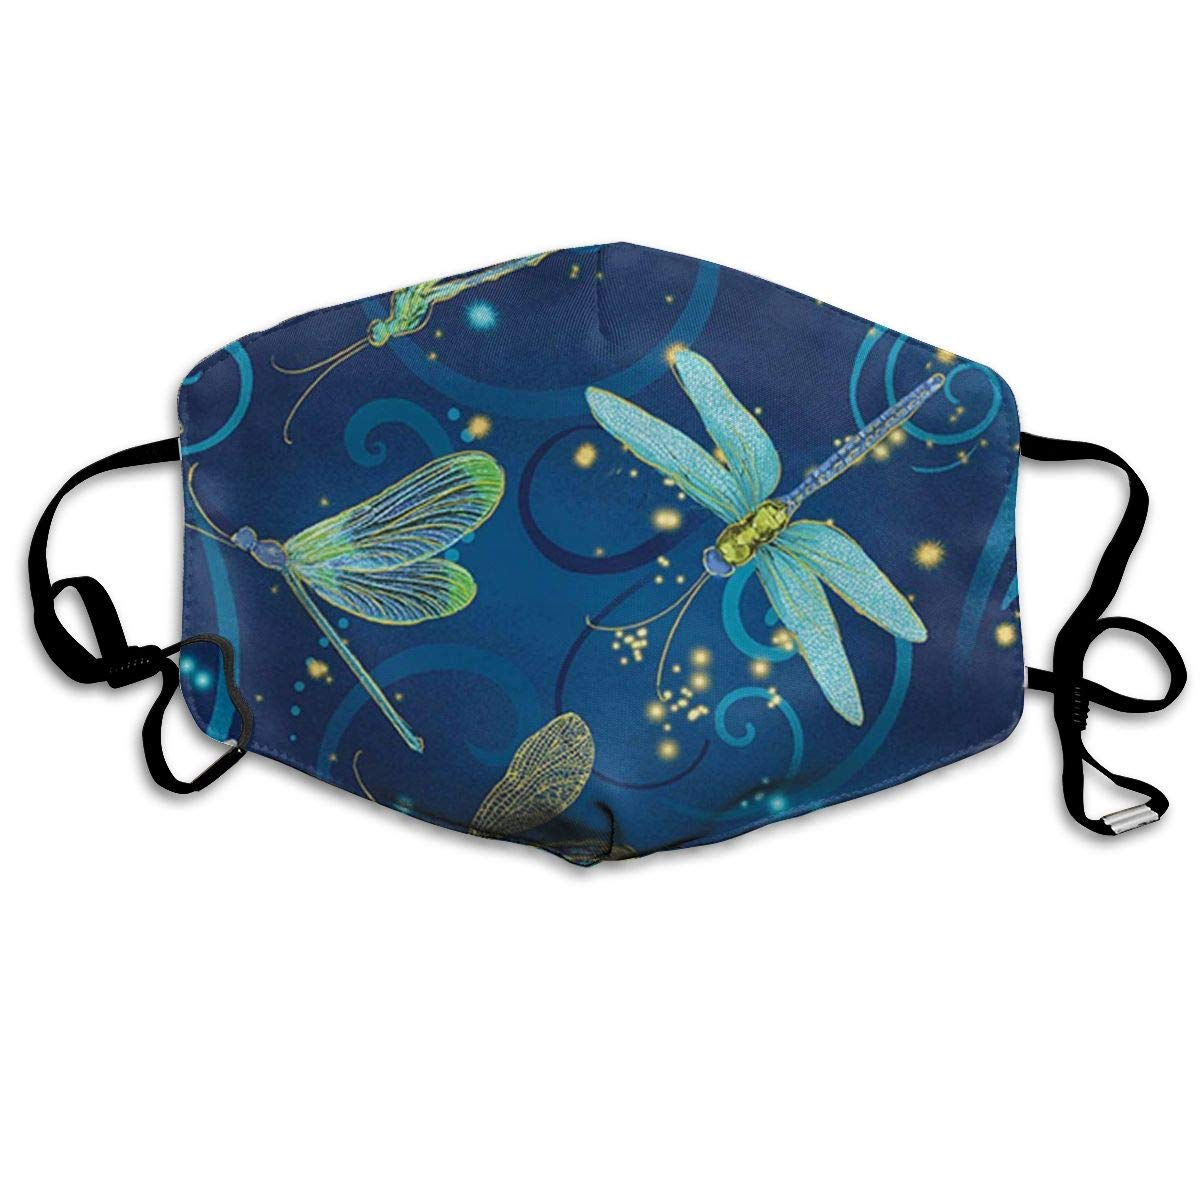 Garde Art Studio   Mask Dancing Dragonfly Swirled Motif Face Mouth Cover For Kids Girls Boys, Unique Reusable &   Dust Proof